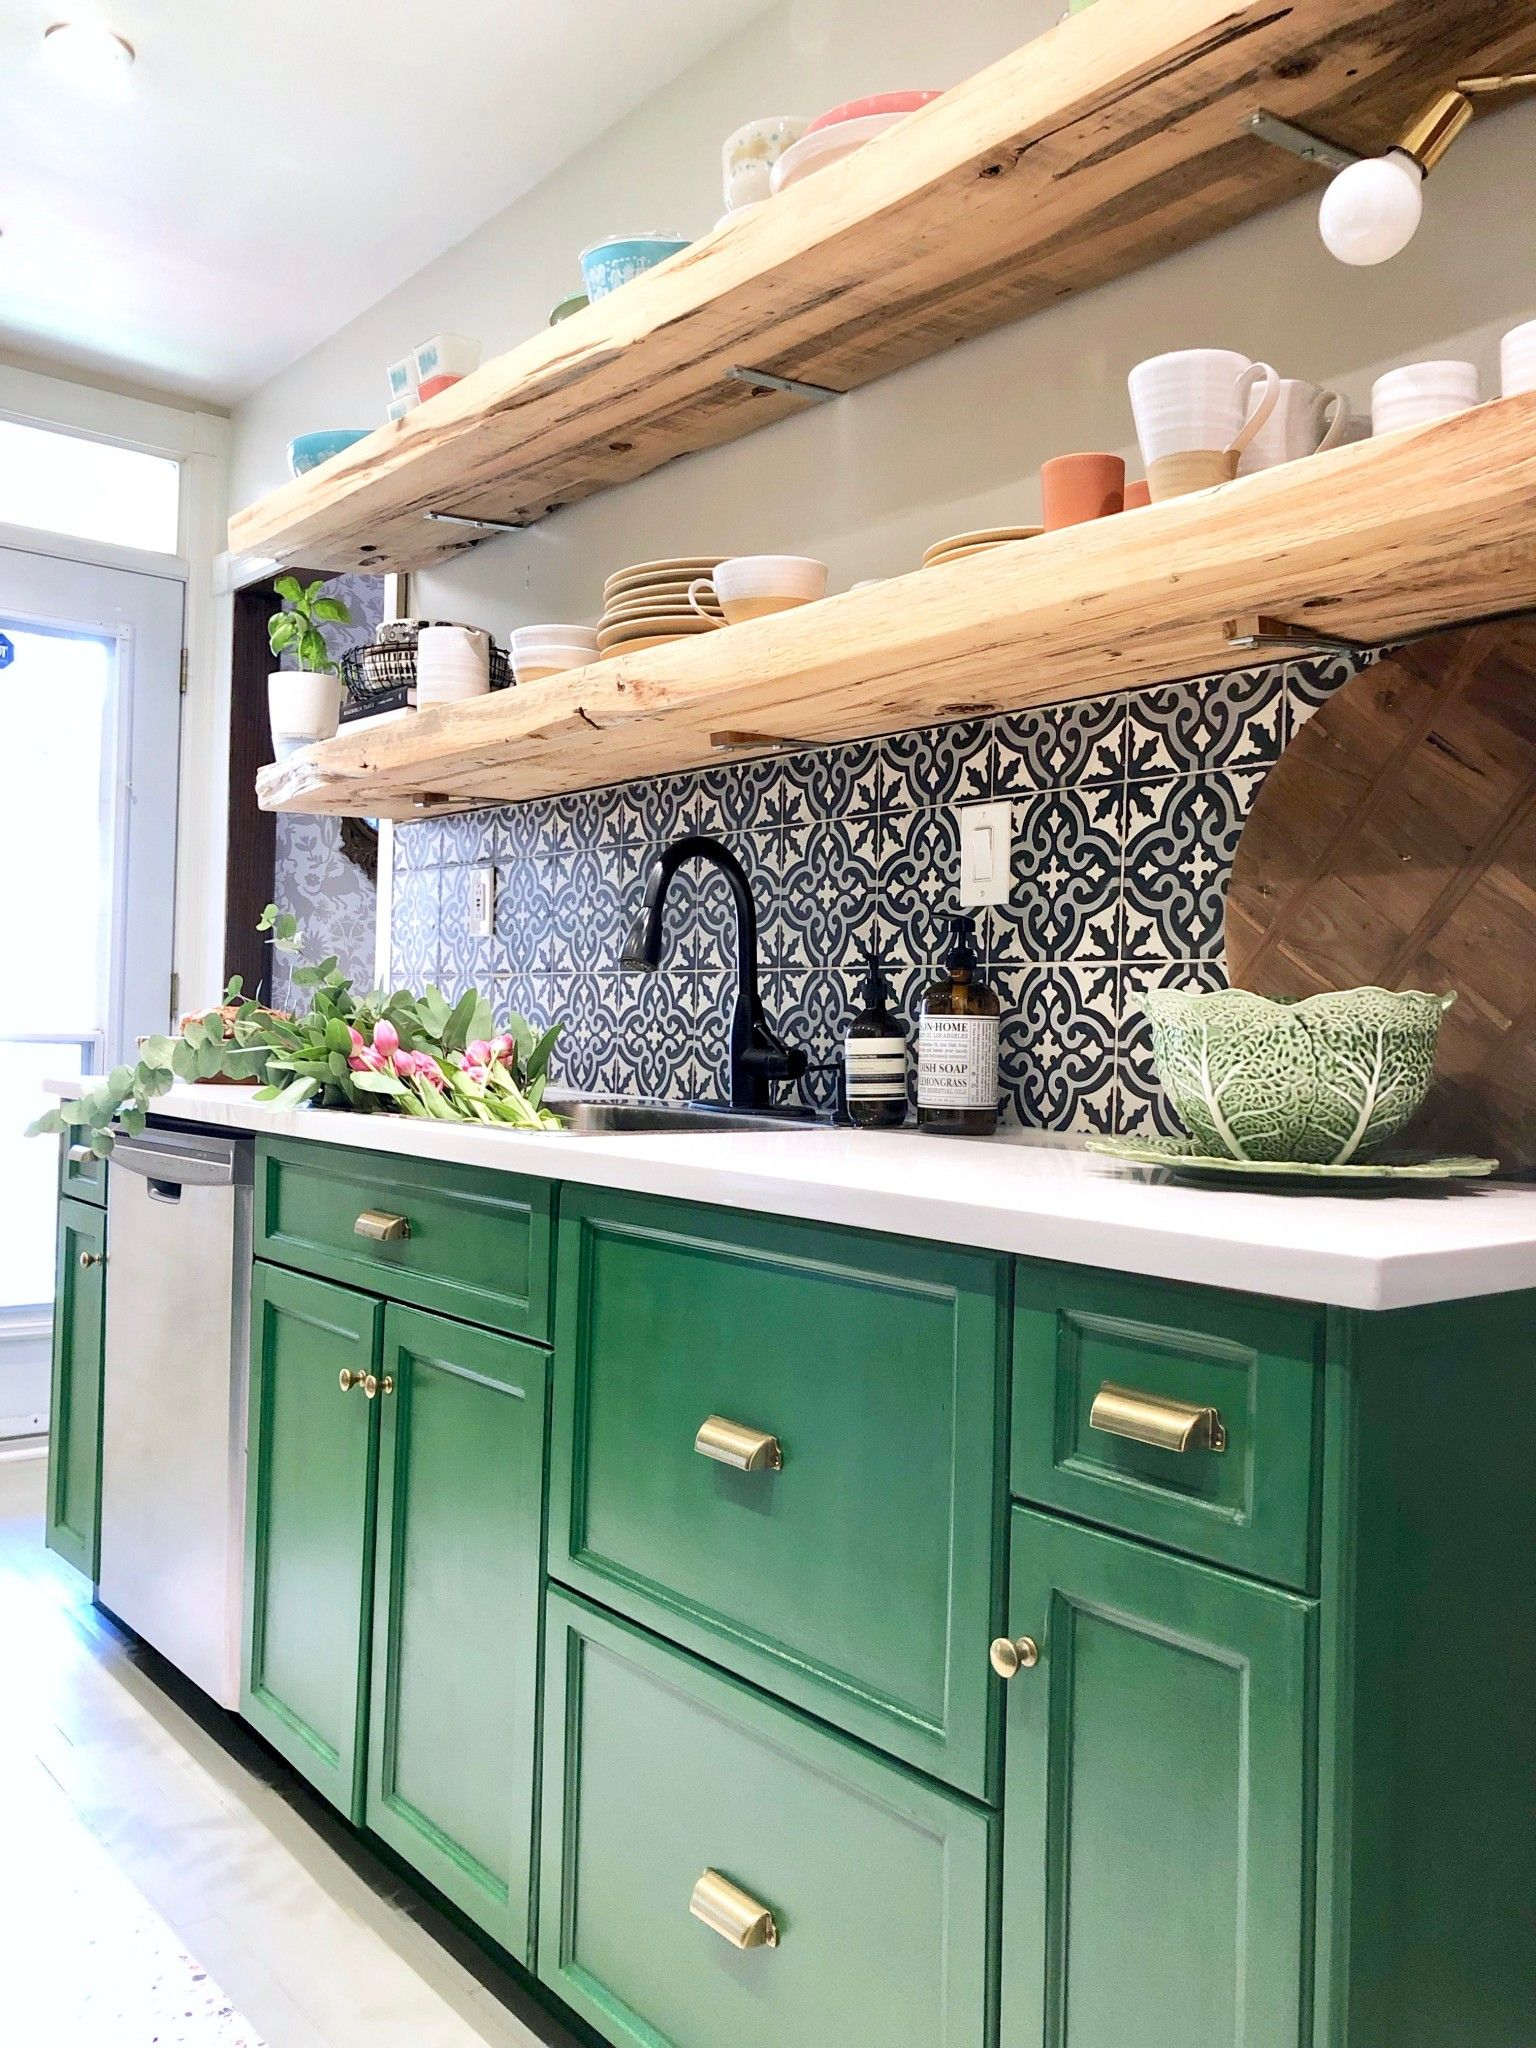 My Kitchen Makeover With The Behr Chalk Decorative Paint Green Kitchen Cabinets Kitchen Cabinet Design Contemporary Kitchen